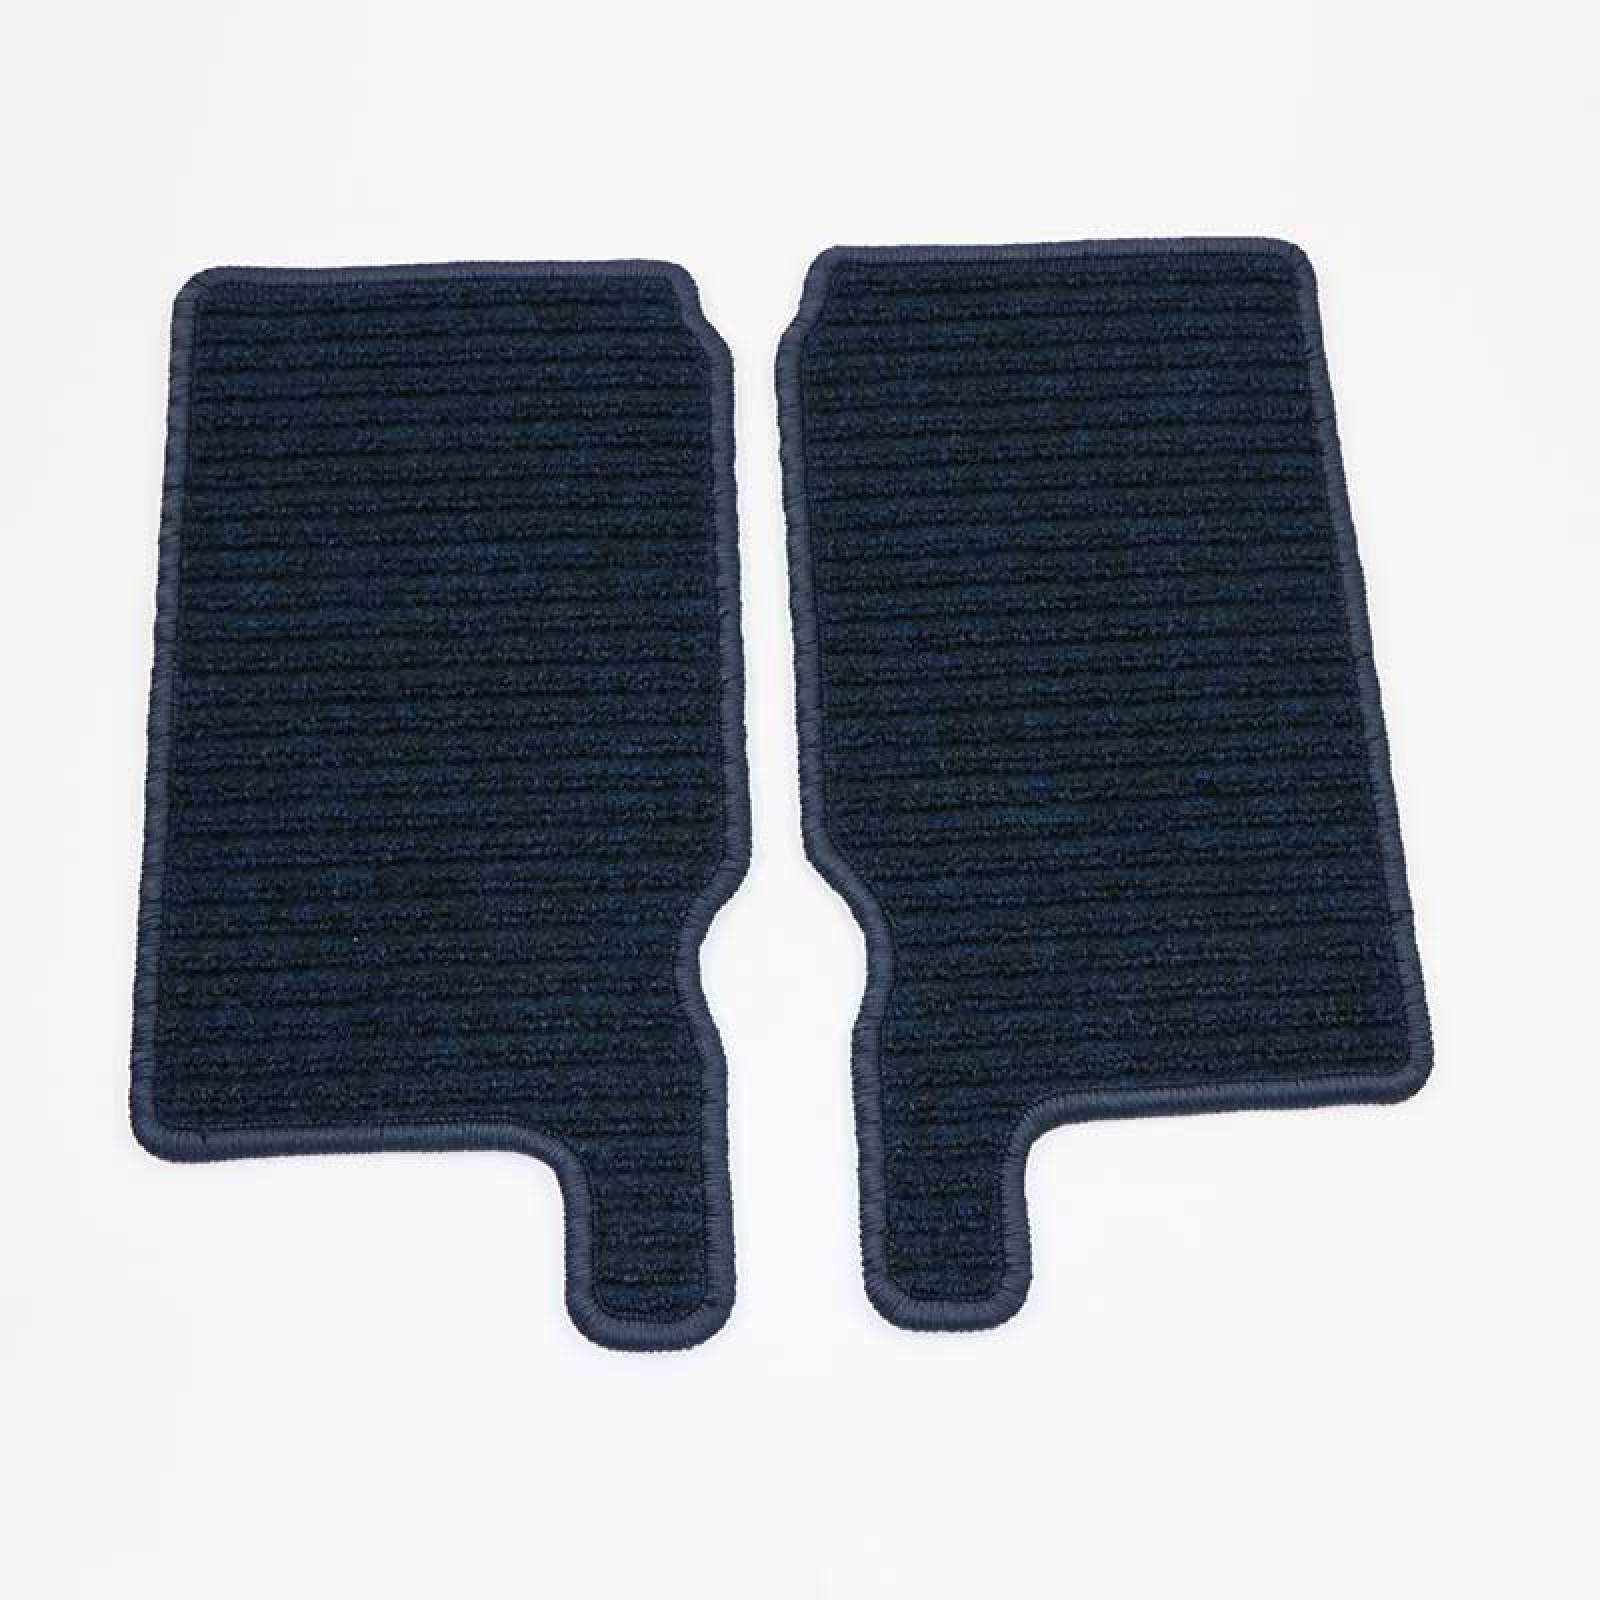 Mercedes benz sl r129 right hand drive ribbed floor mats for Mercedes benz sl550 floor mats